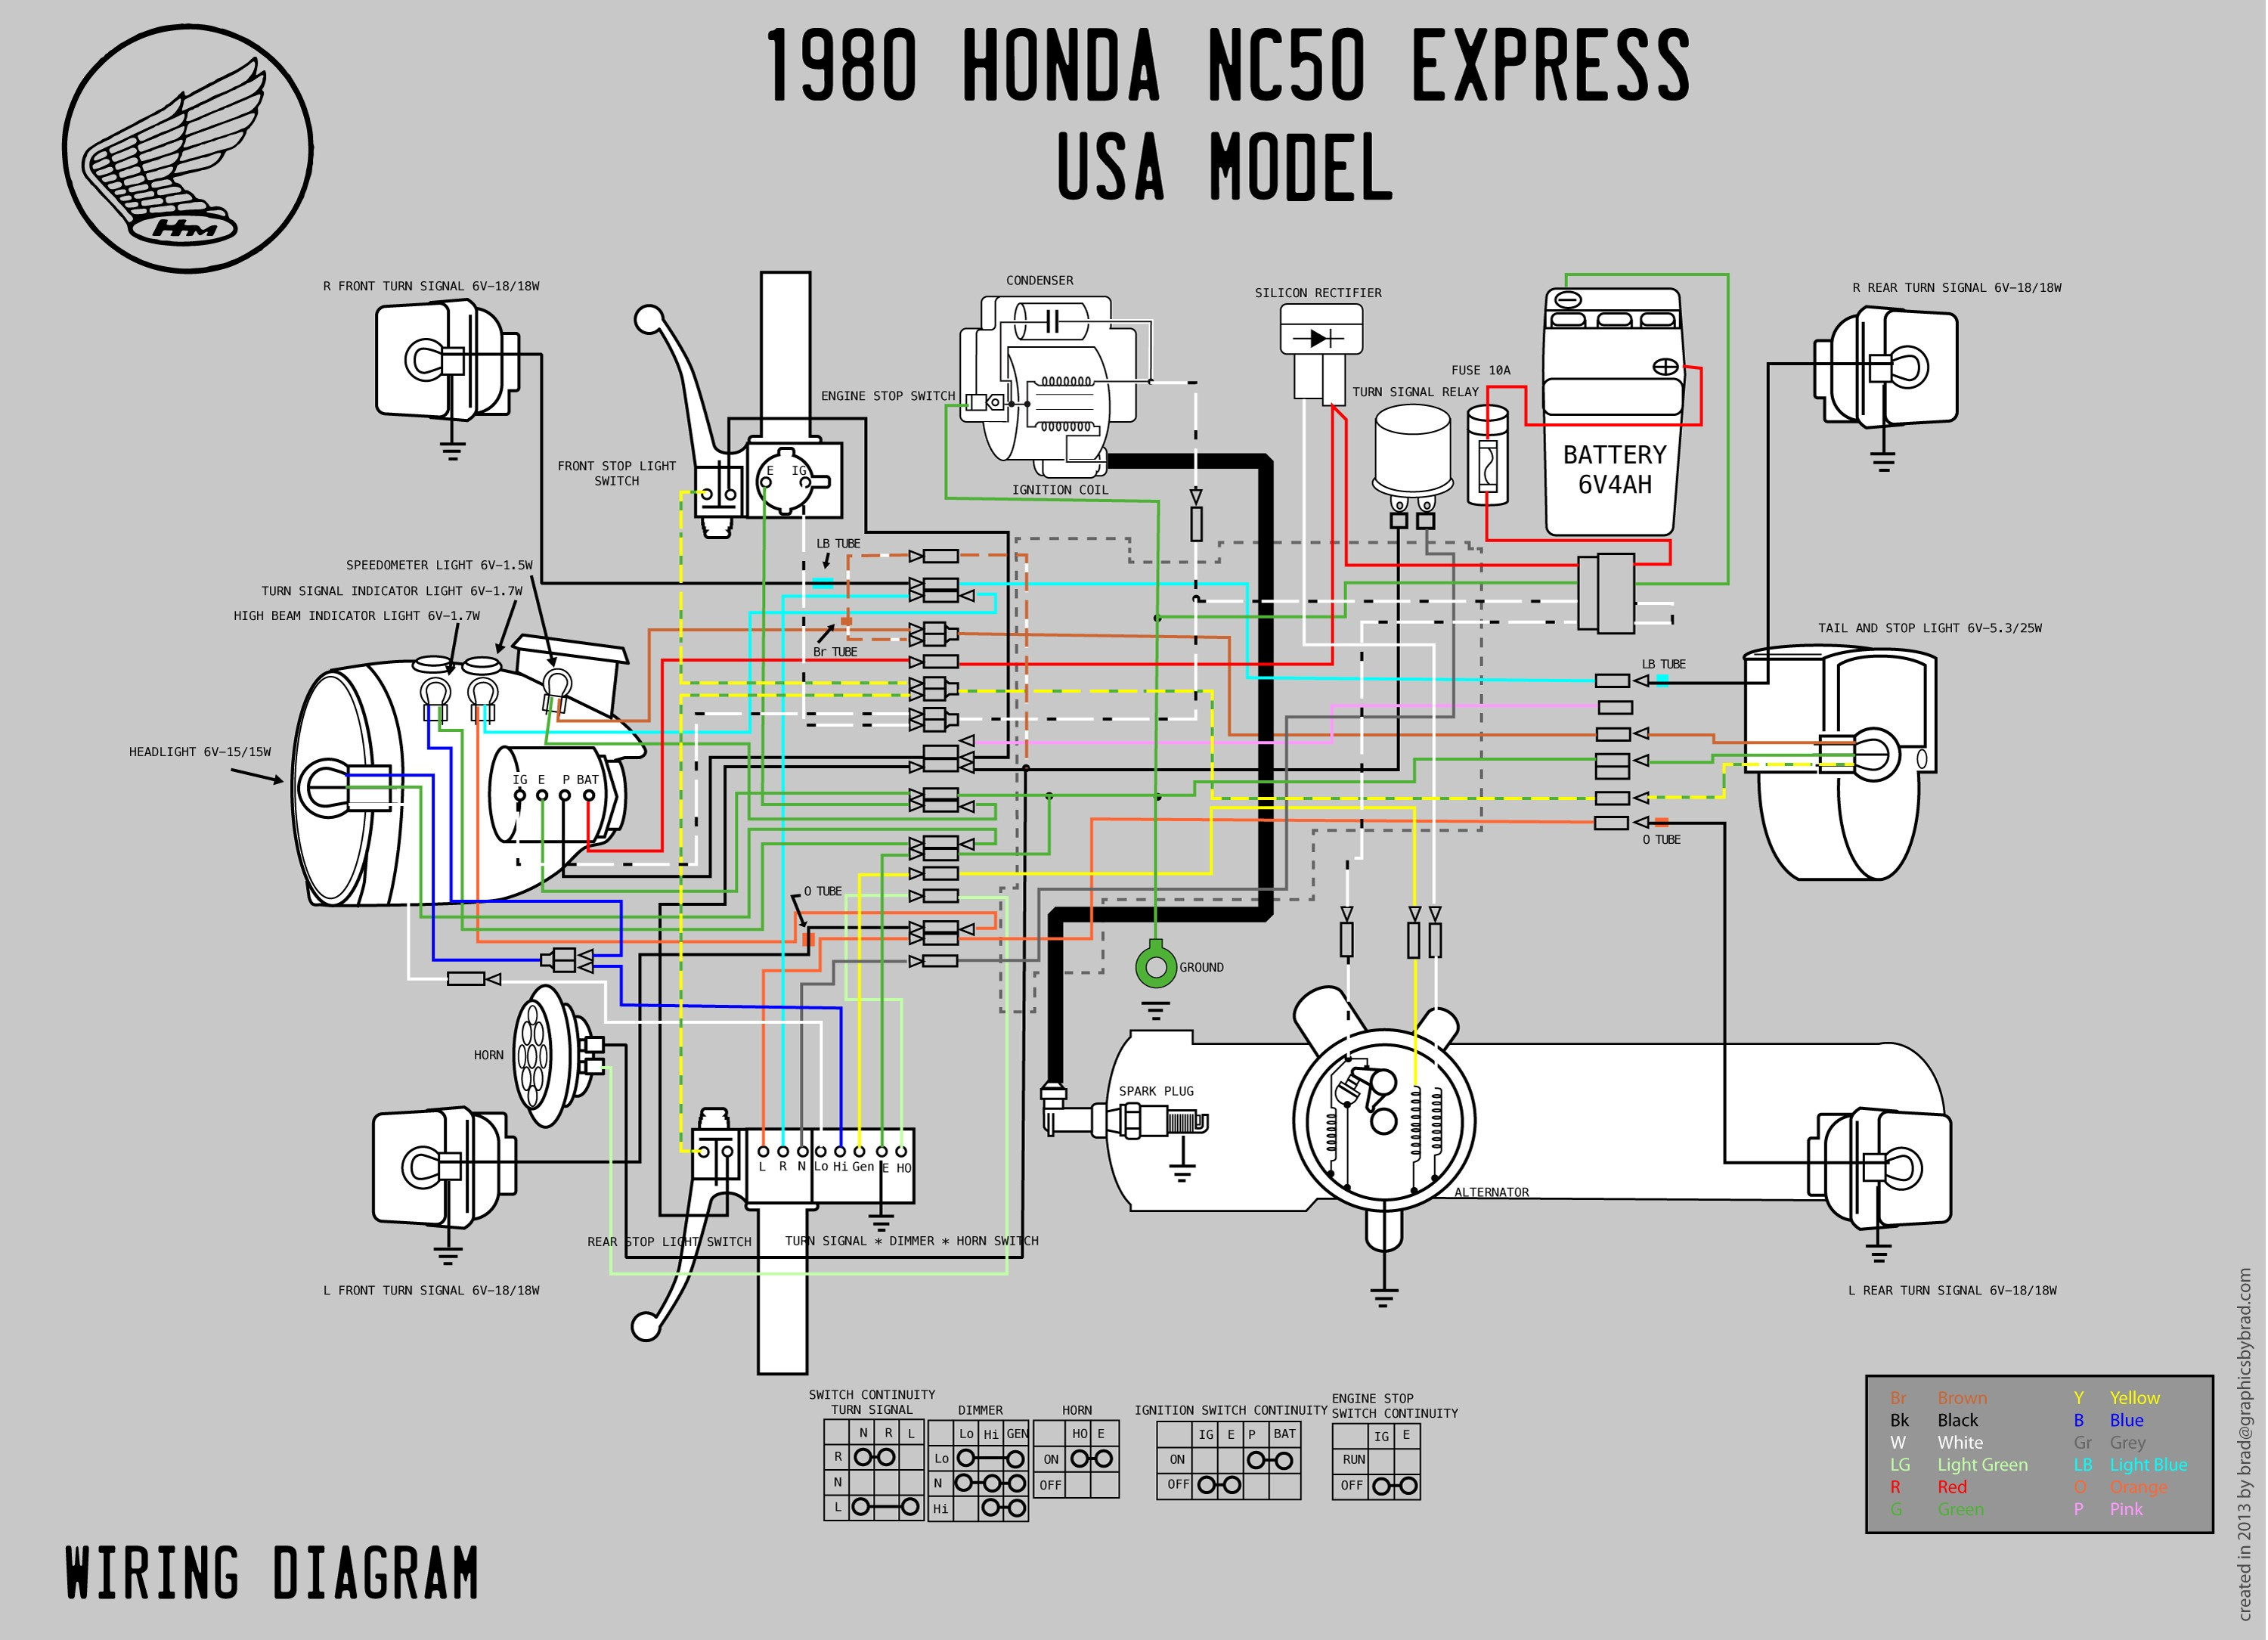 Wiring Diagram For 1979 Kawasaki Largest Database Klr 650 1980 Honda Cb650 Wire Diagrams Rh Detoxicrecenze Com Klf 300 Vulcan 1500